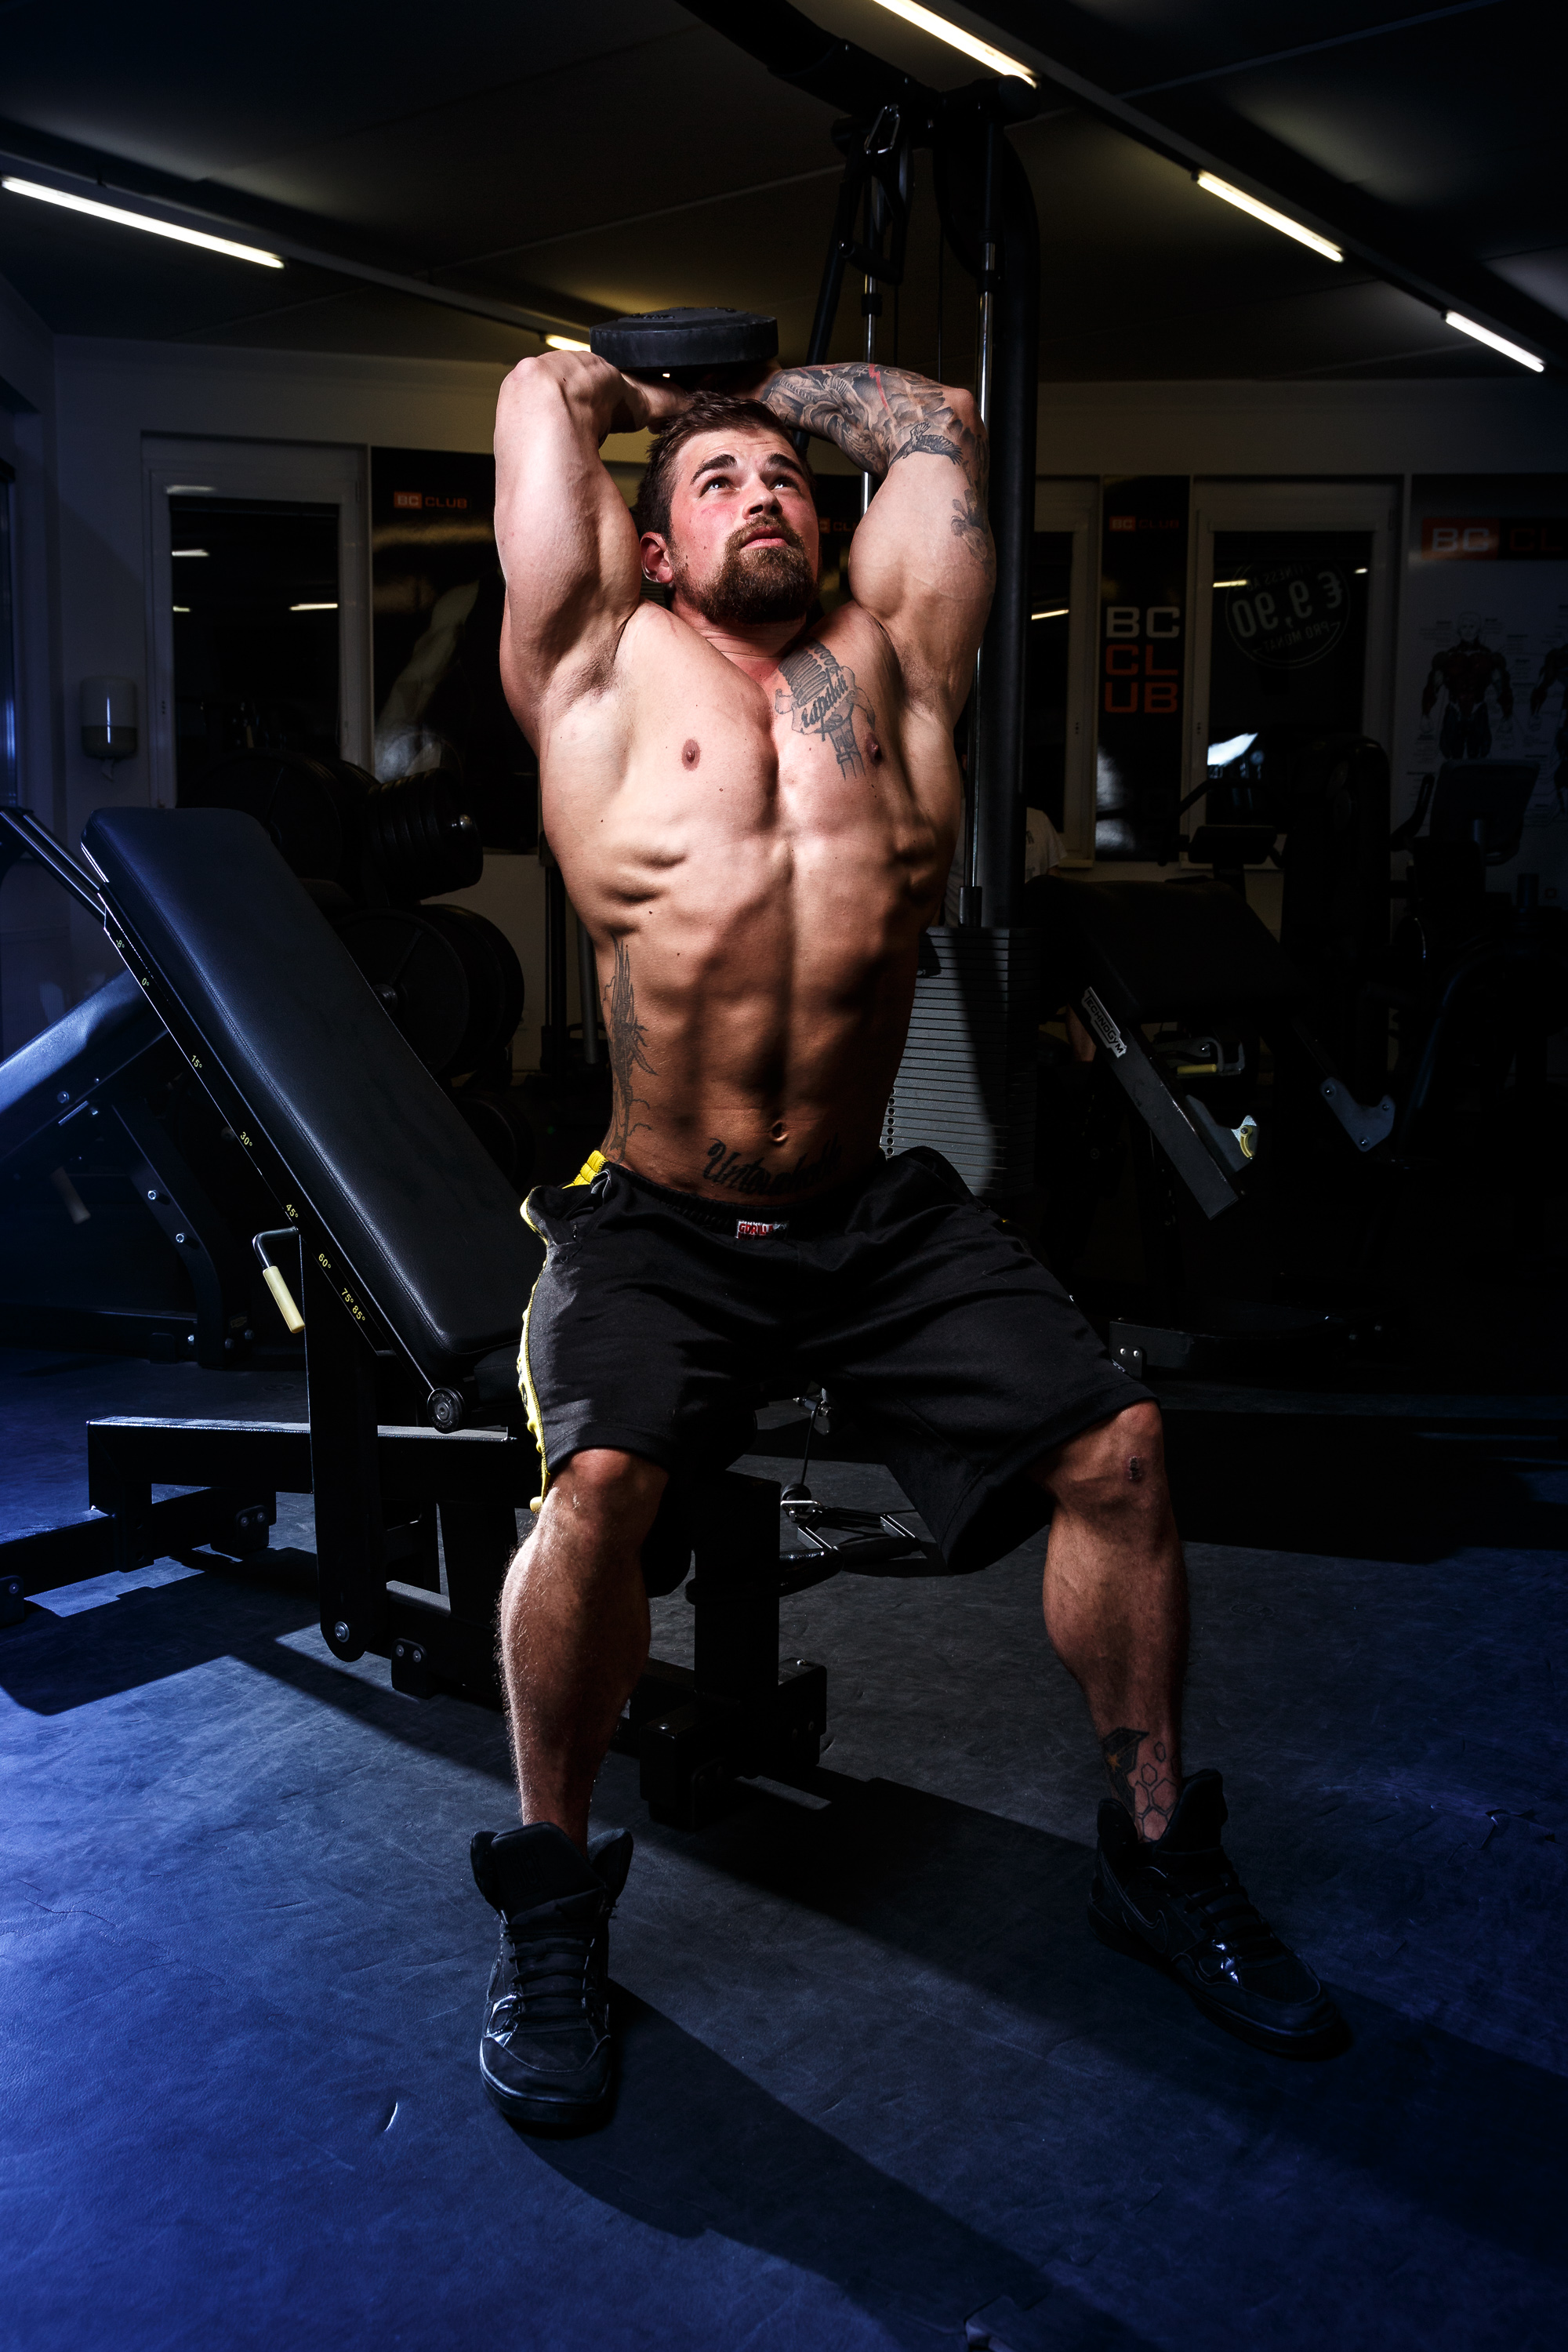 Bodybuilder-Michael-Sauseng-rawpix.at-4019.jpg